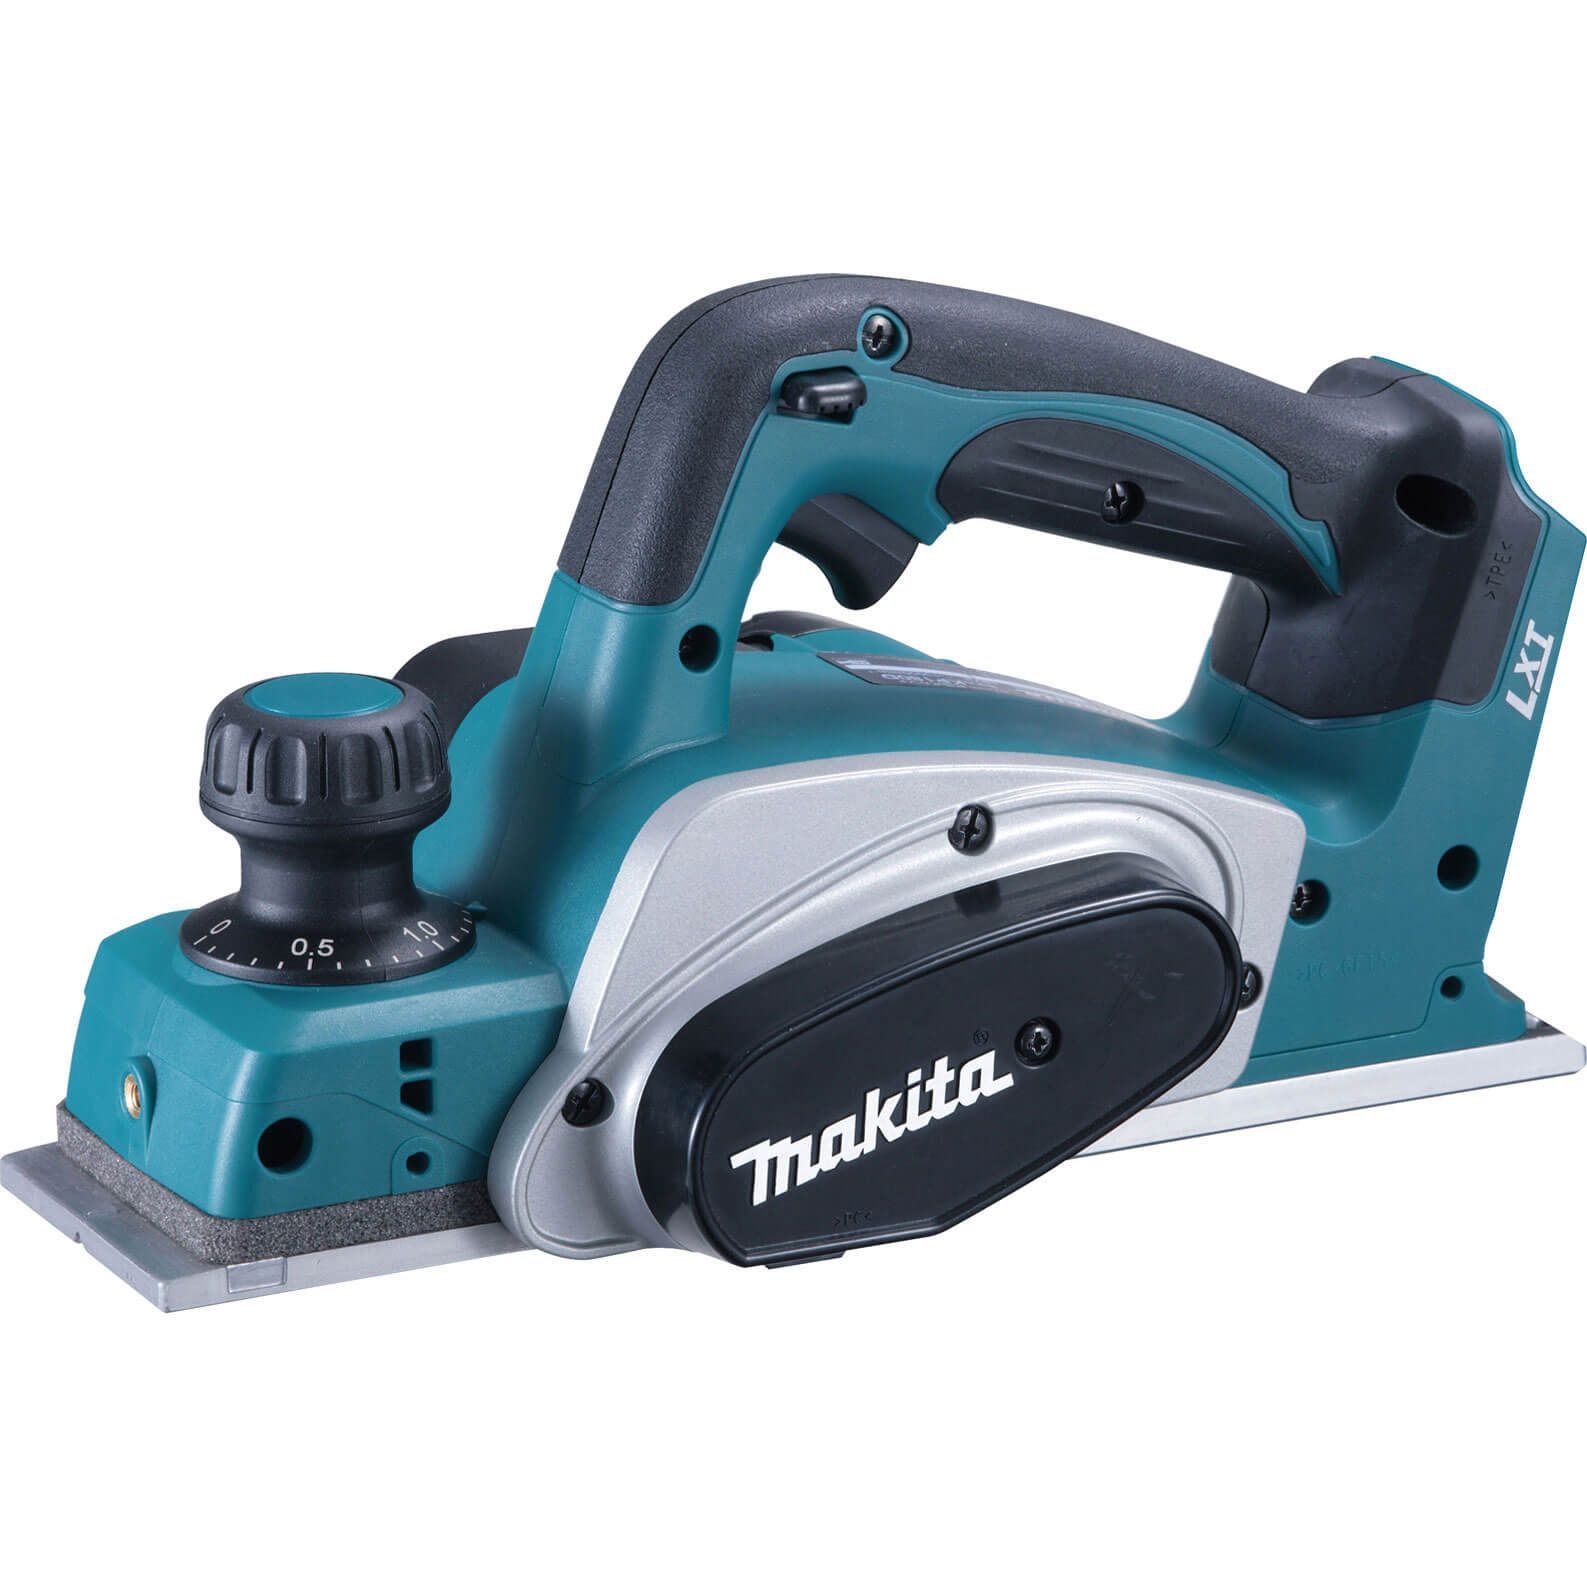 Makita BKP180Z LXT 18V Li-Ion Cordless Planer 82mm Width without Battery or Charger